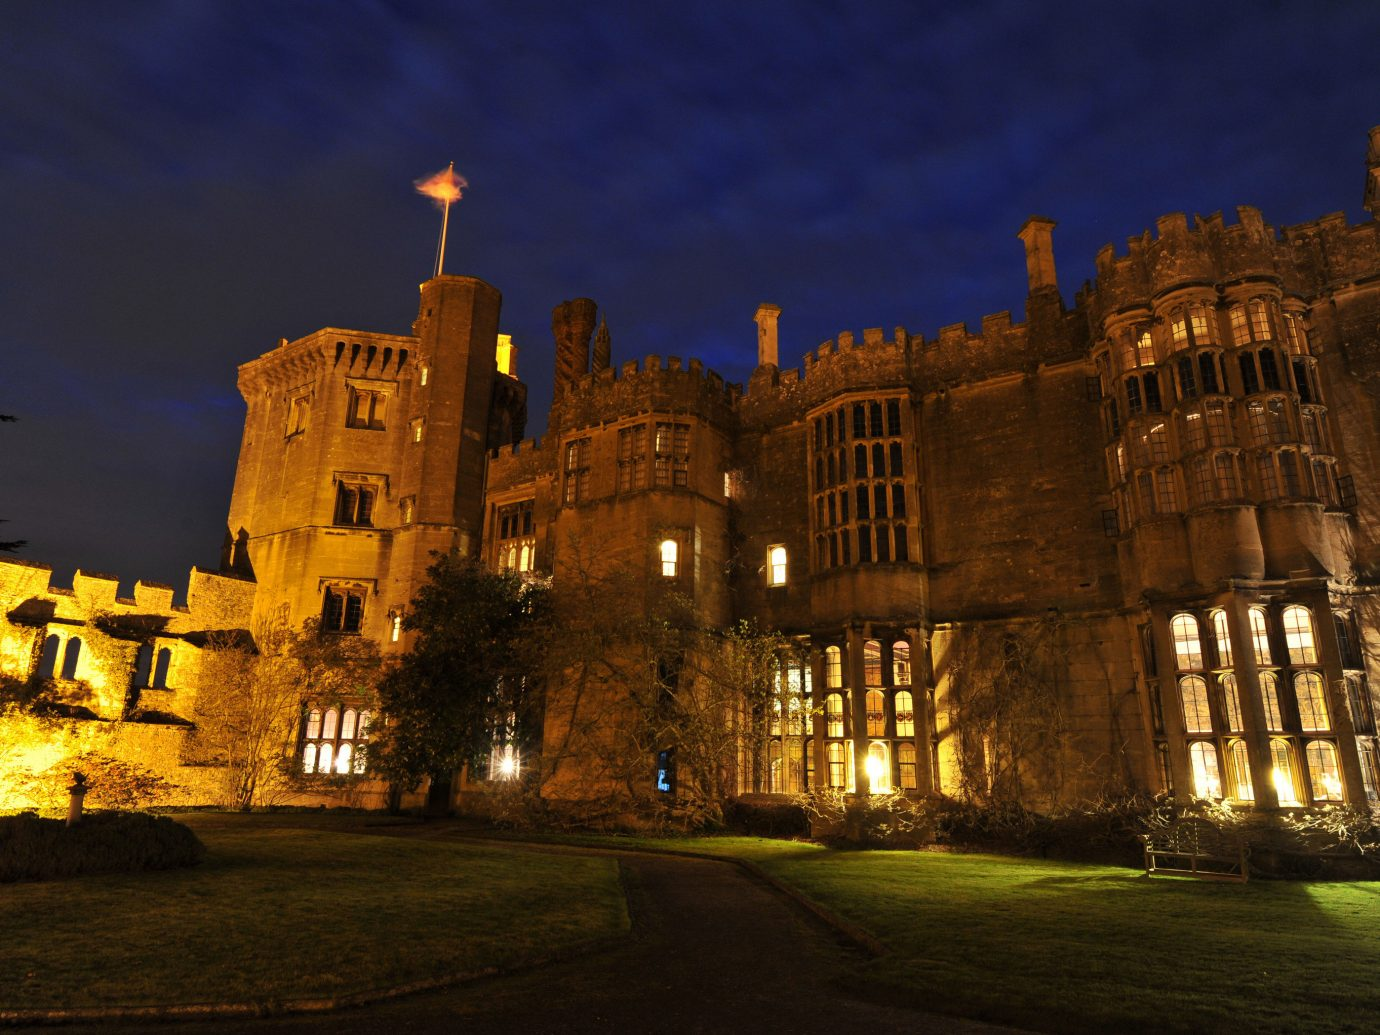 Hotels building outdoor night landmark château evening castle cathedral palace cityscape estate dusk